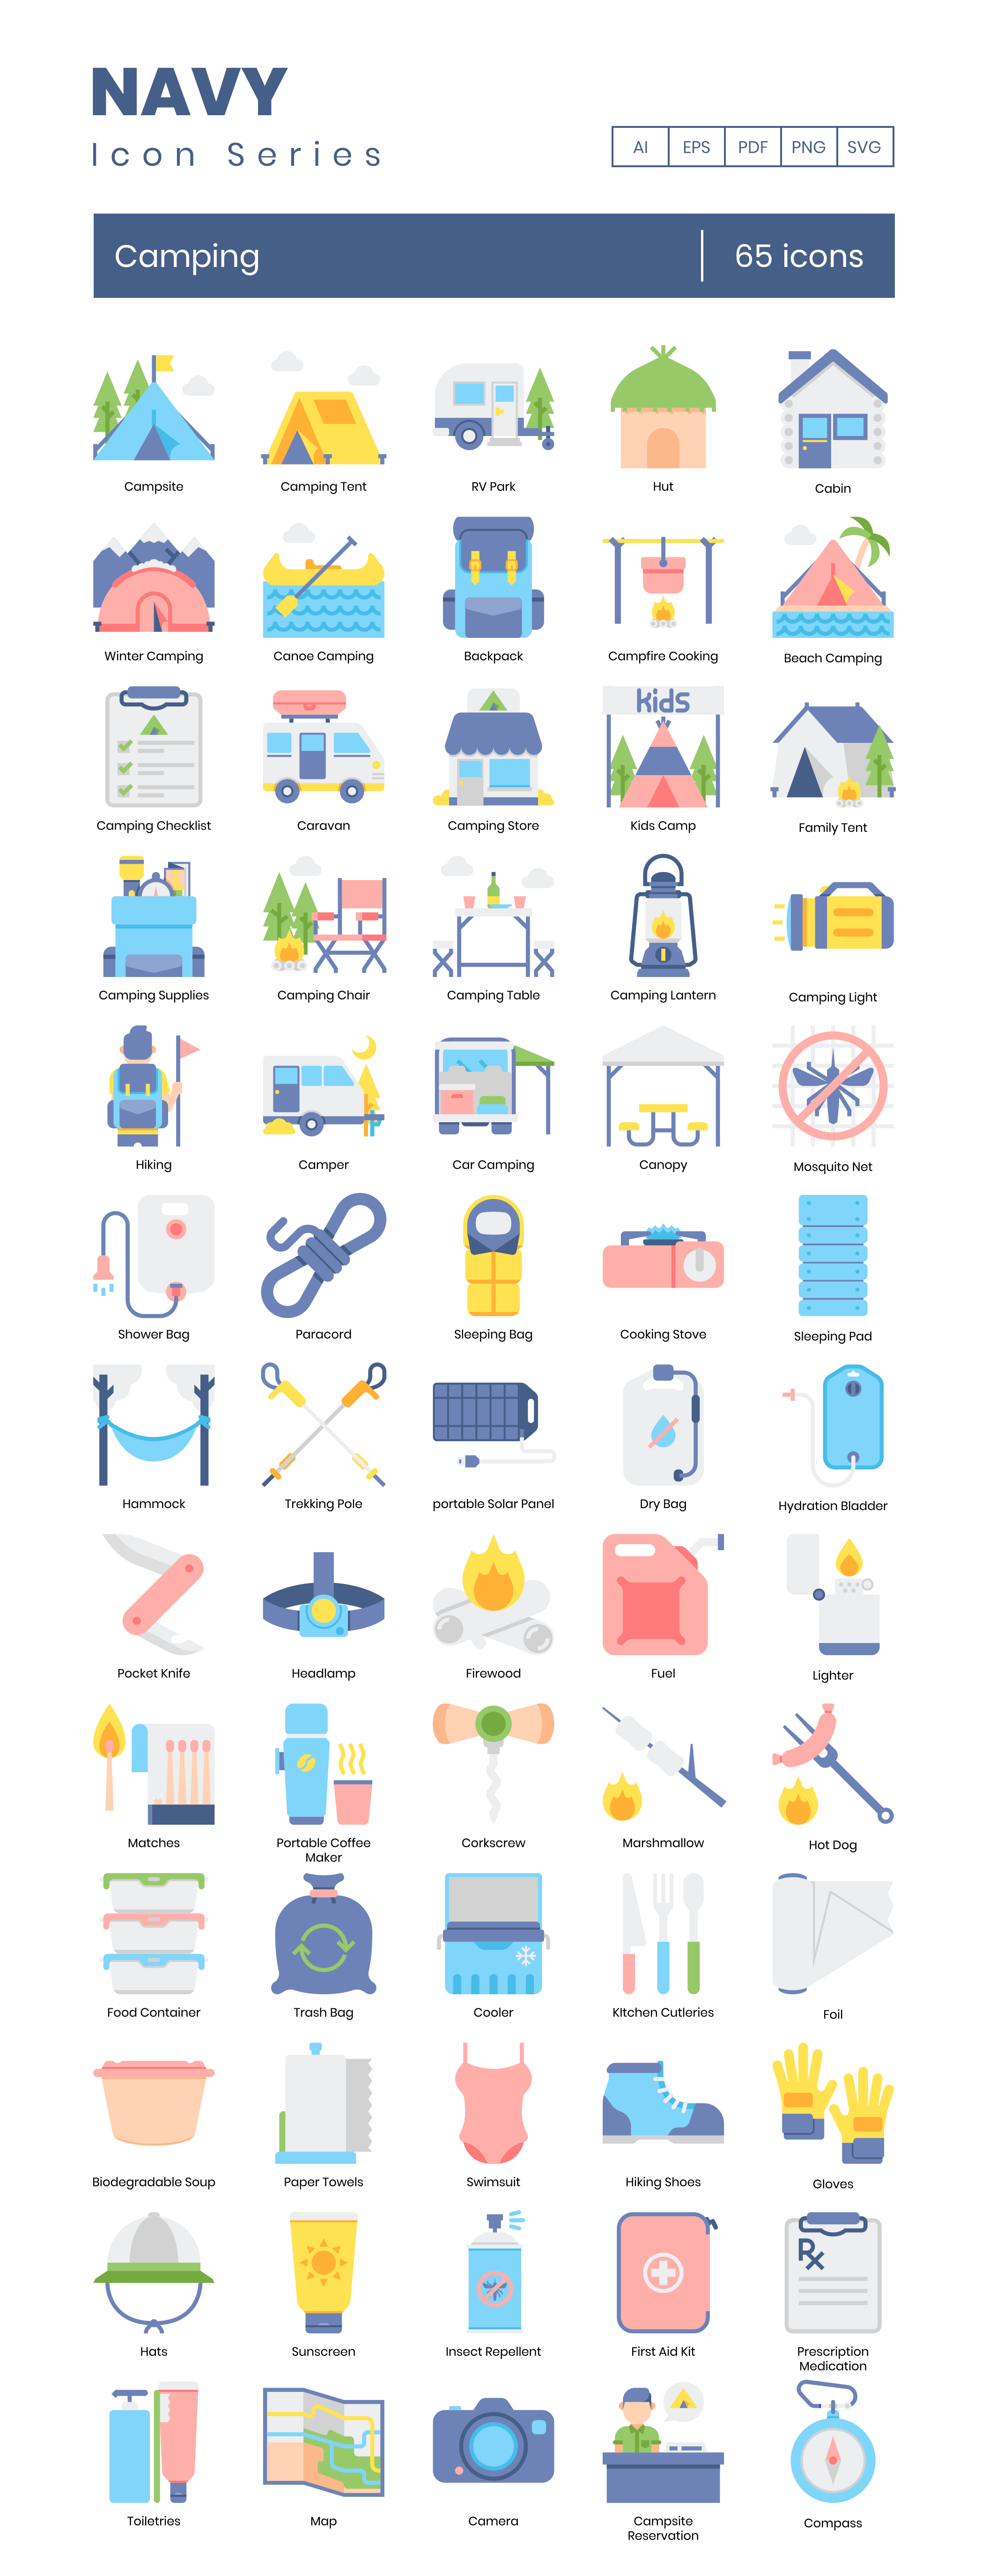 Preview Image for Camping Icon Set